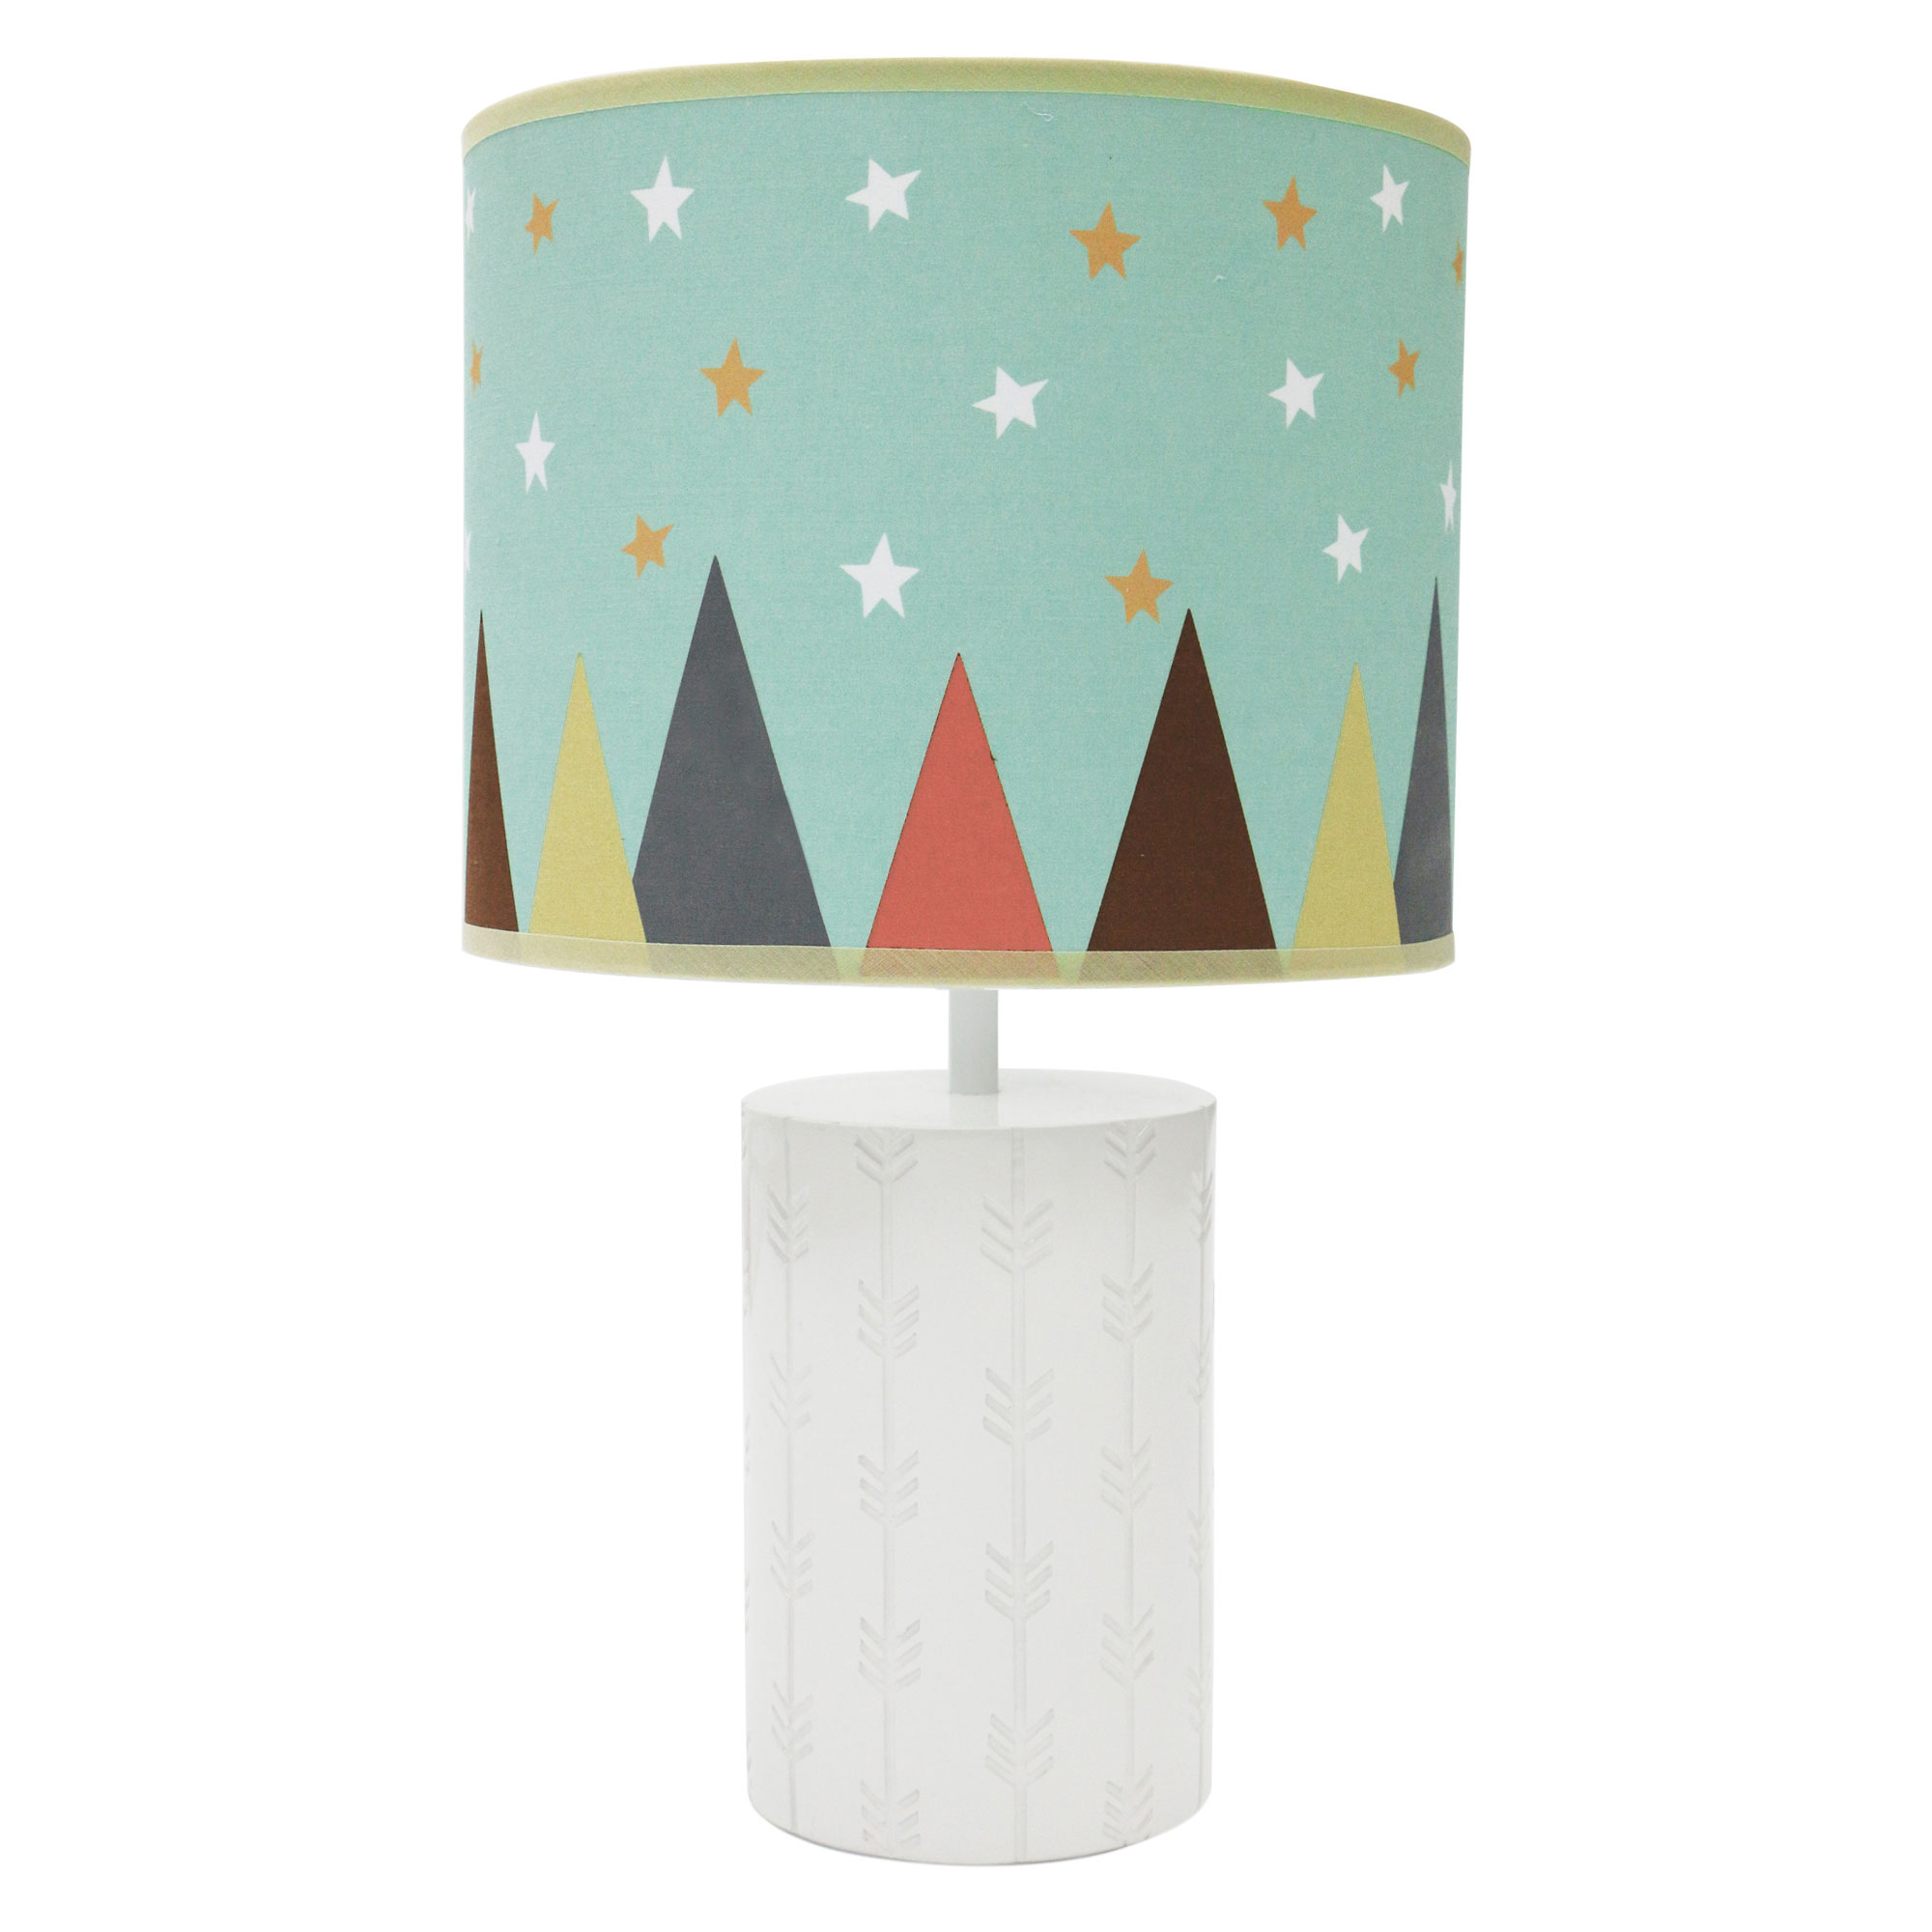 Little Haven Clever Fox Nursery Lamp White and Aqua Lamp Base and Shade by Farallon Brands